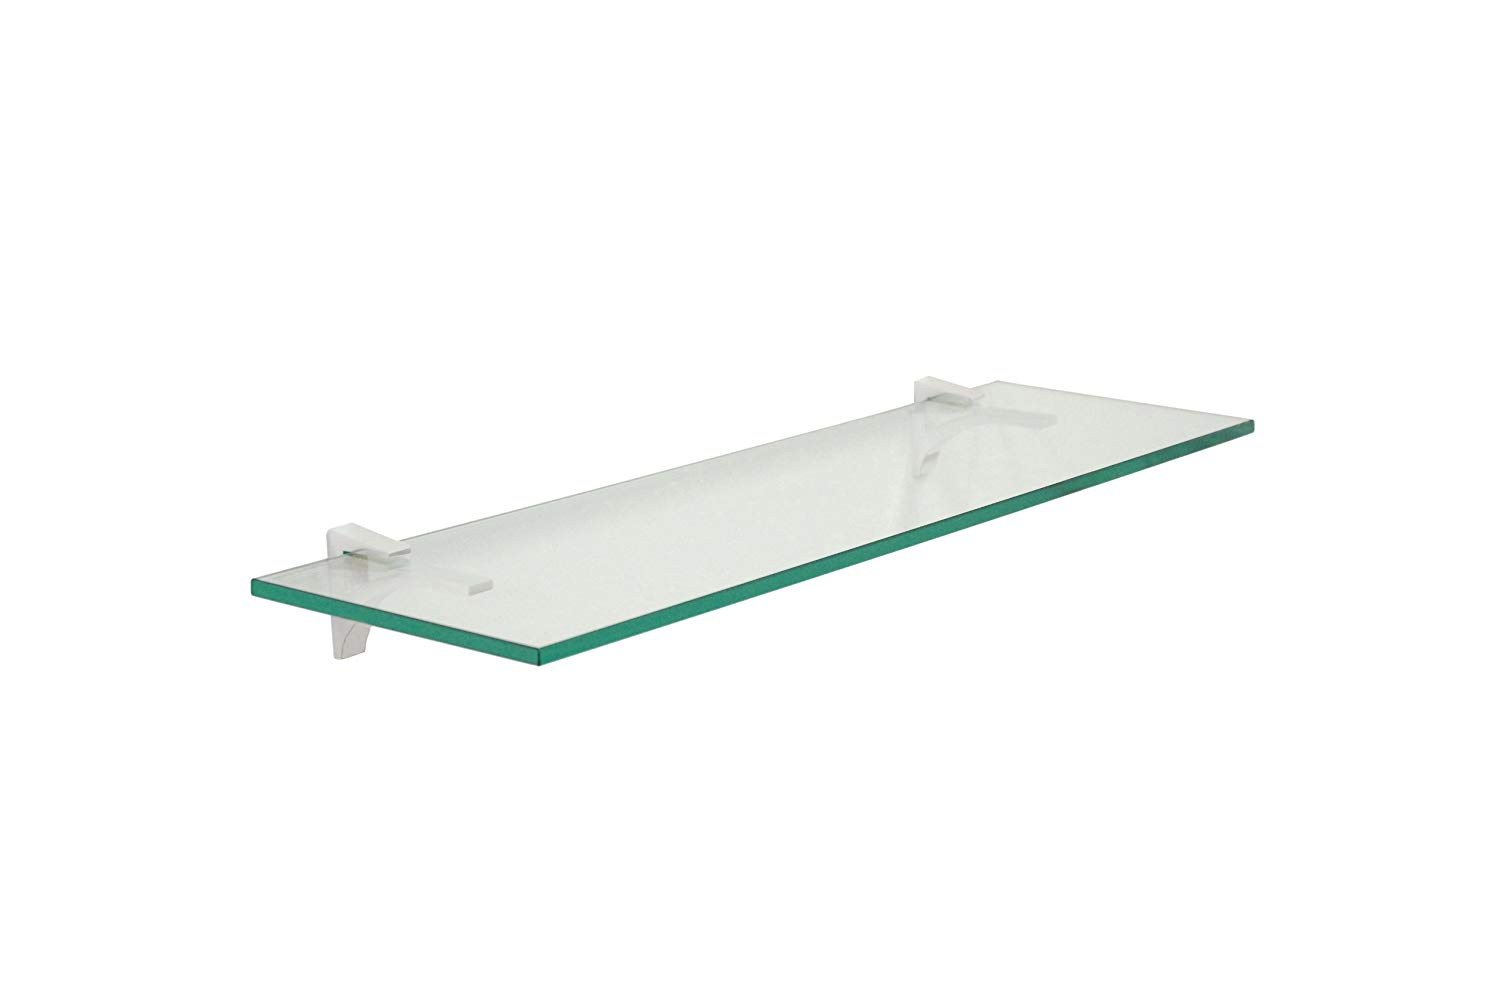 clear floating glass shelf white home shelves kitchen target bookcase wooden bathroom rack installing underlayment vinyl metal expandable coat command strips ceiling bella vista